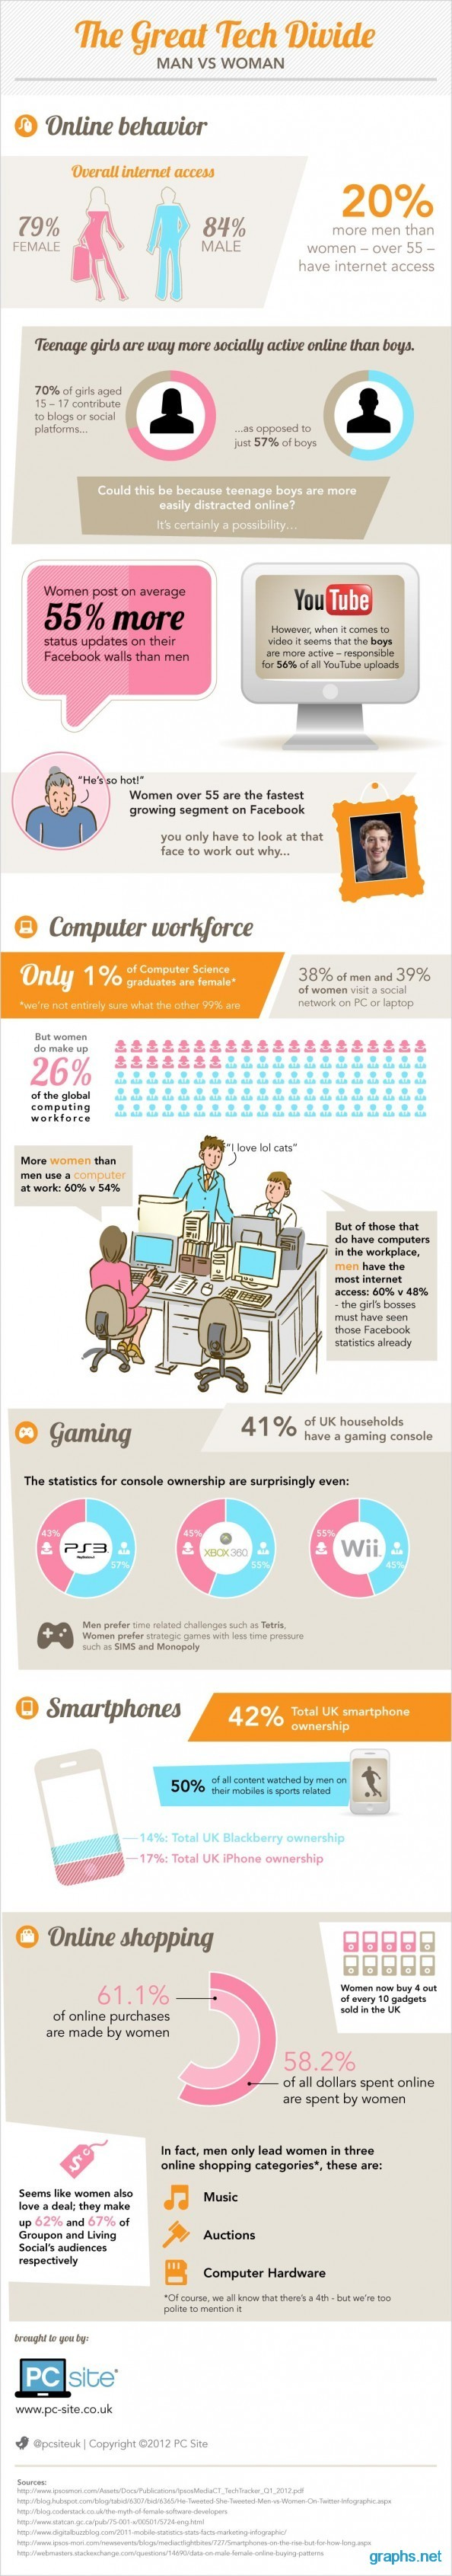 Online Access Statistics Men vs. Women